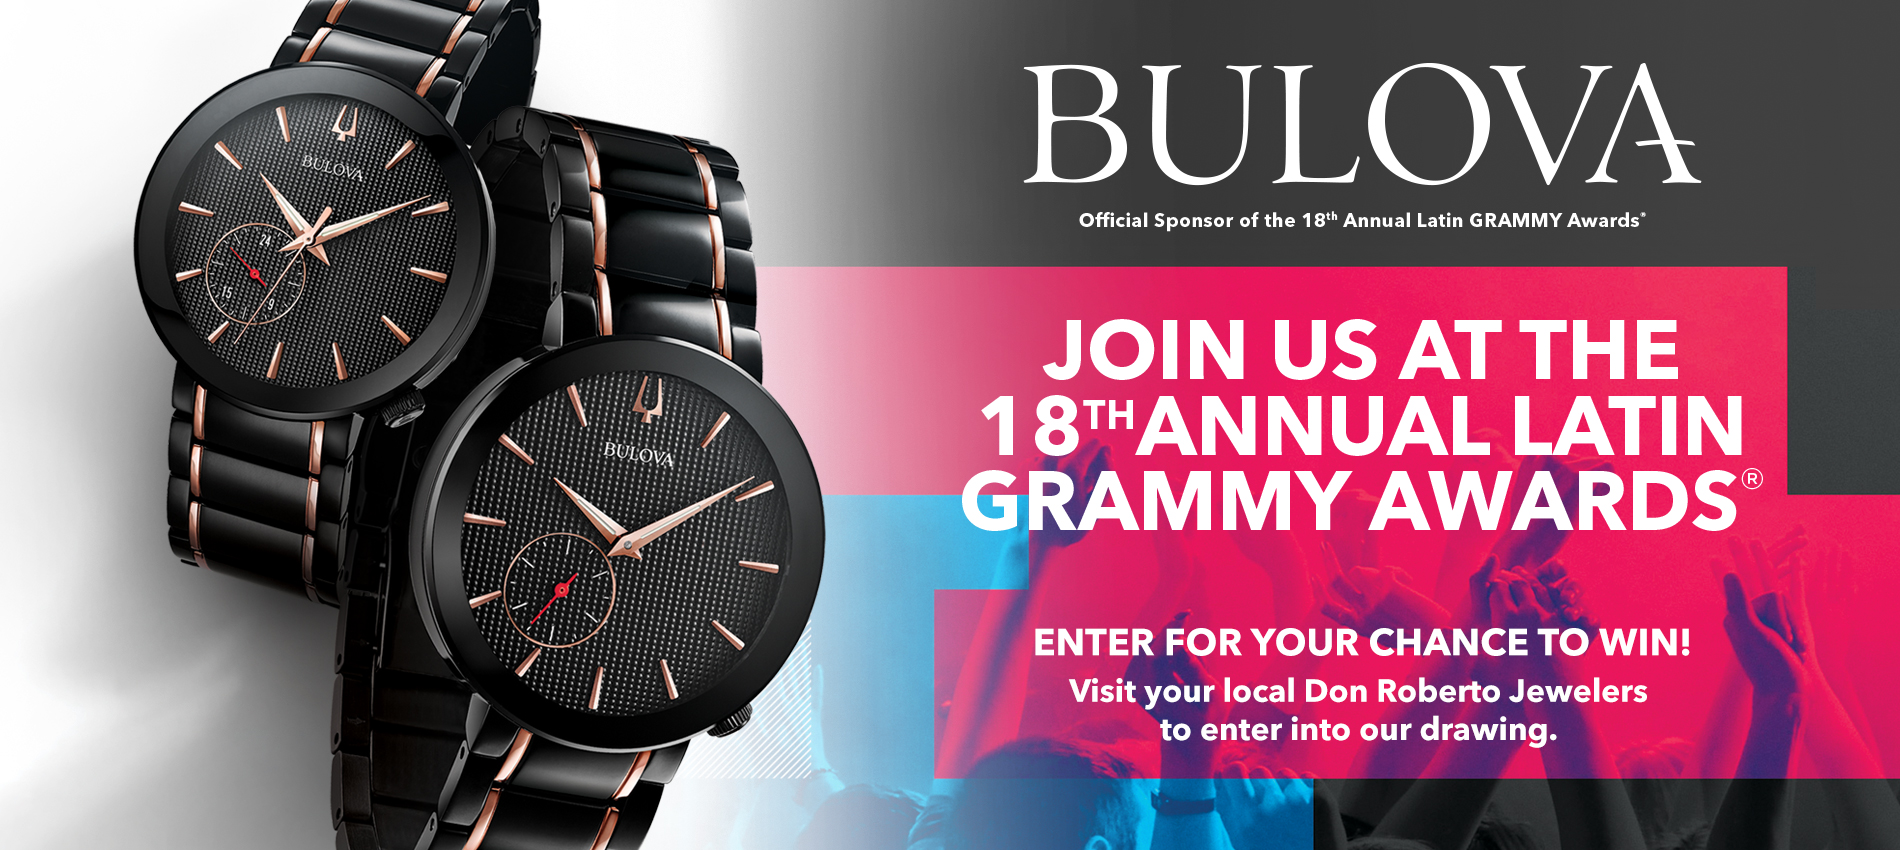 Enter to Win Two Tickets to the 18th Annual Latin Grammy Awards